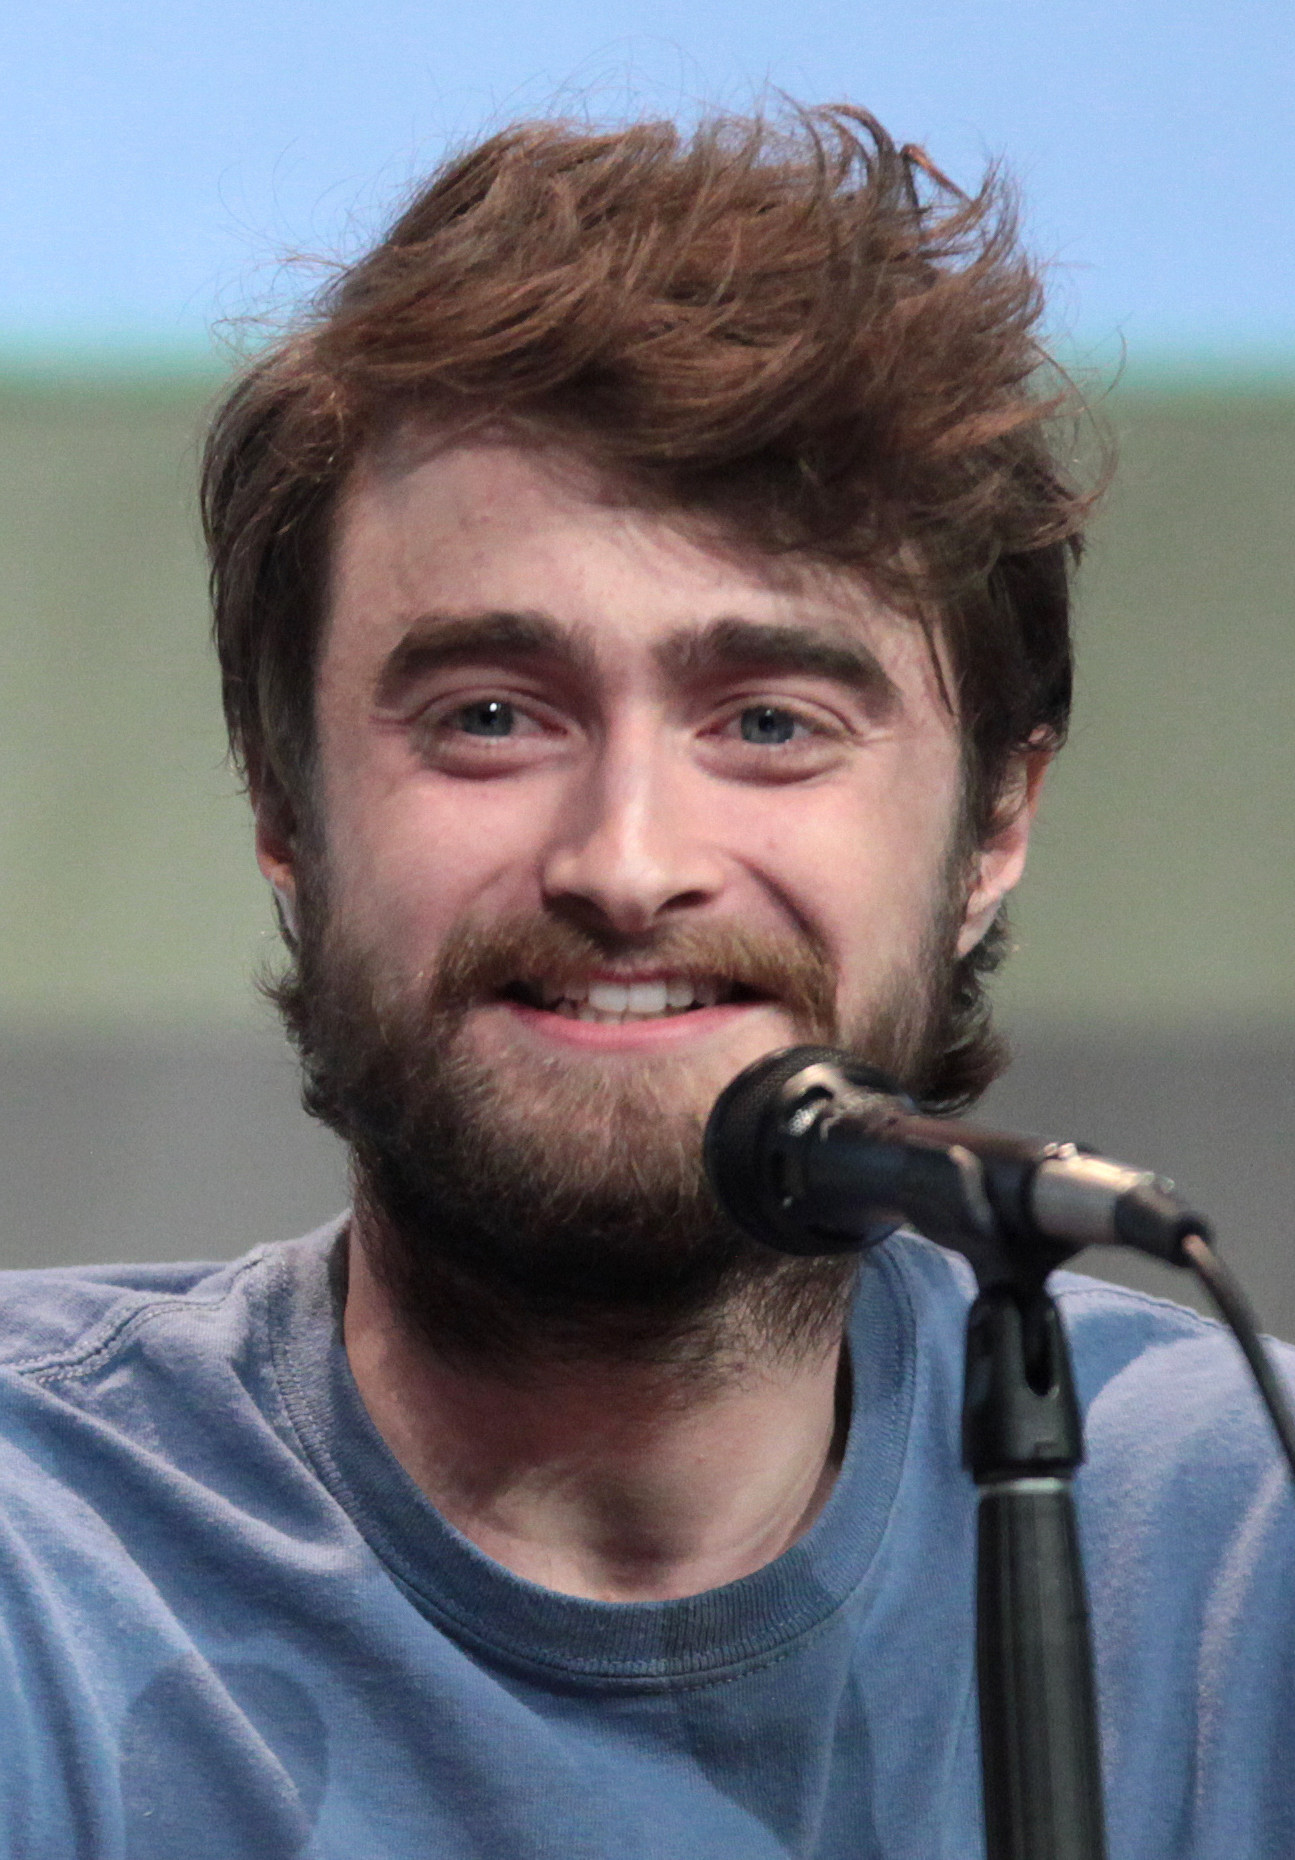 Daniel Radcliffe Wikipedia .josh potter starts off this episode by discussing the lakers' nba championship win, then covers the divisive debate of who the goat is. daniel radcliffe wikipedia